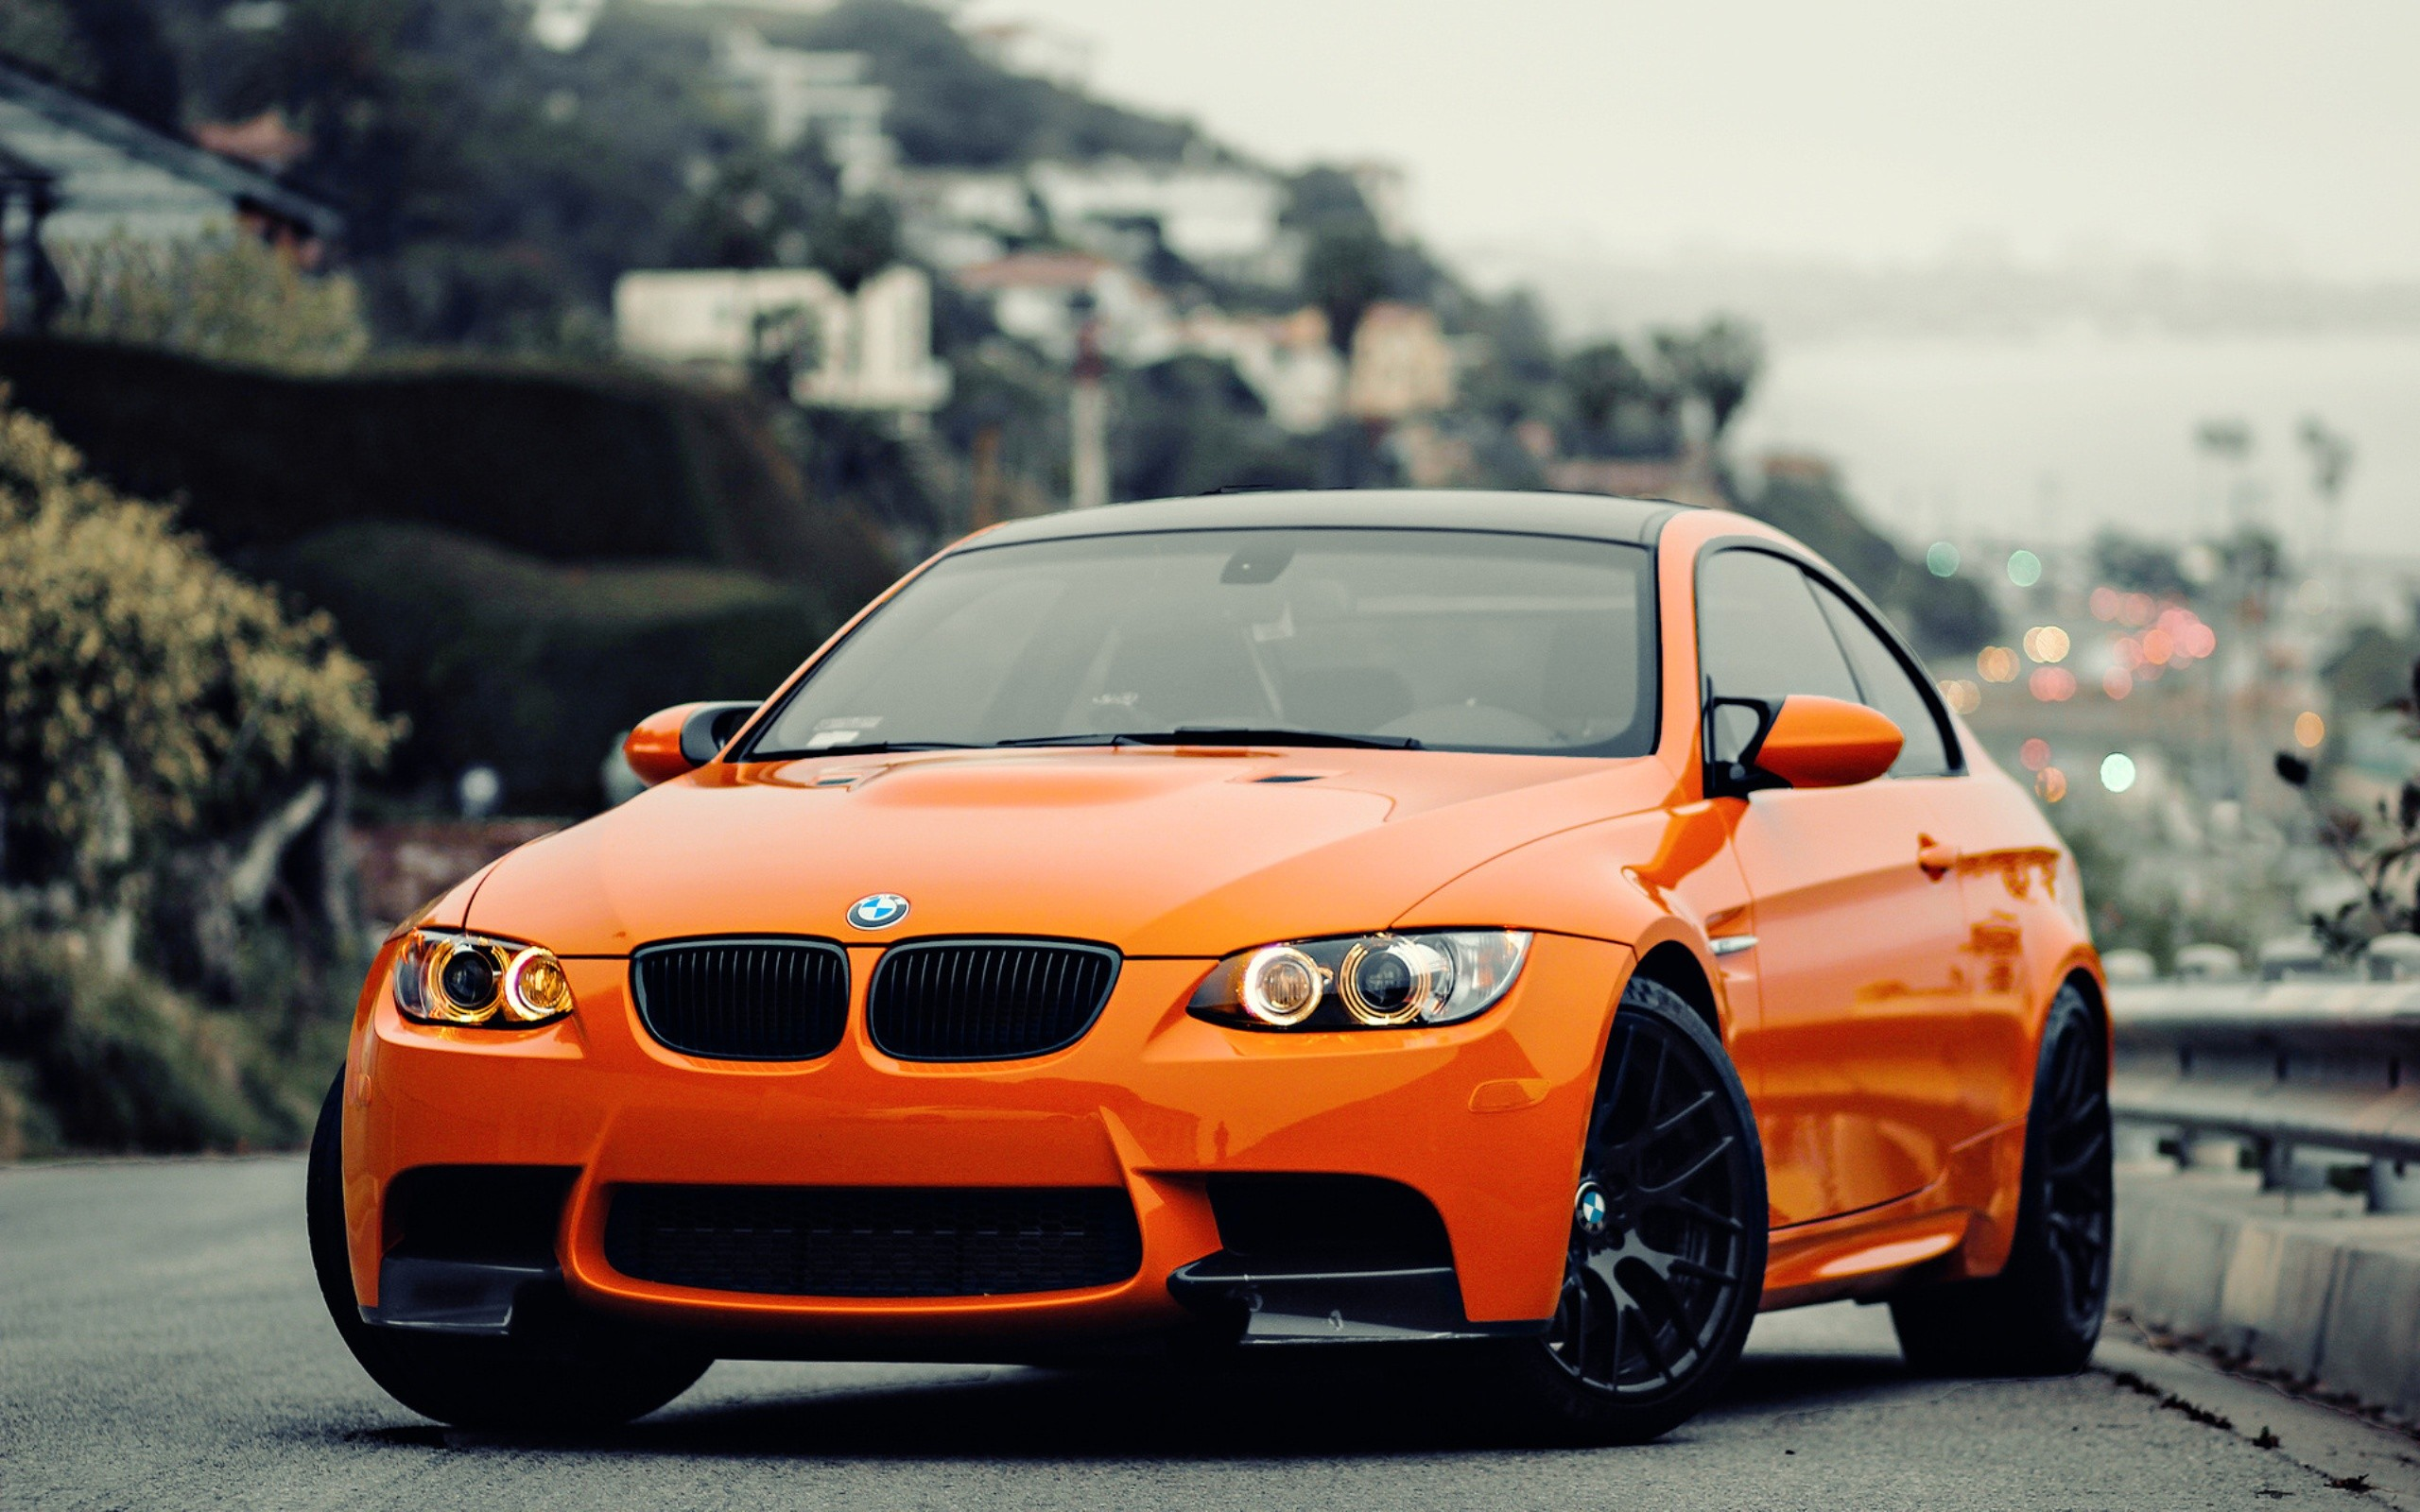 bmw m3 orange german gts cars hd background e92 wallpapers backgrounds mobile screen wallup